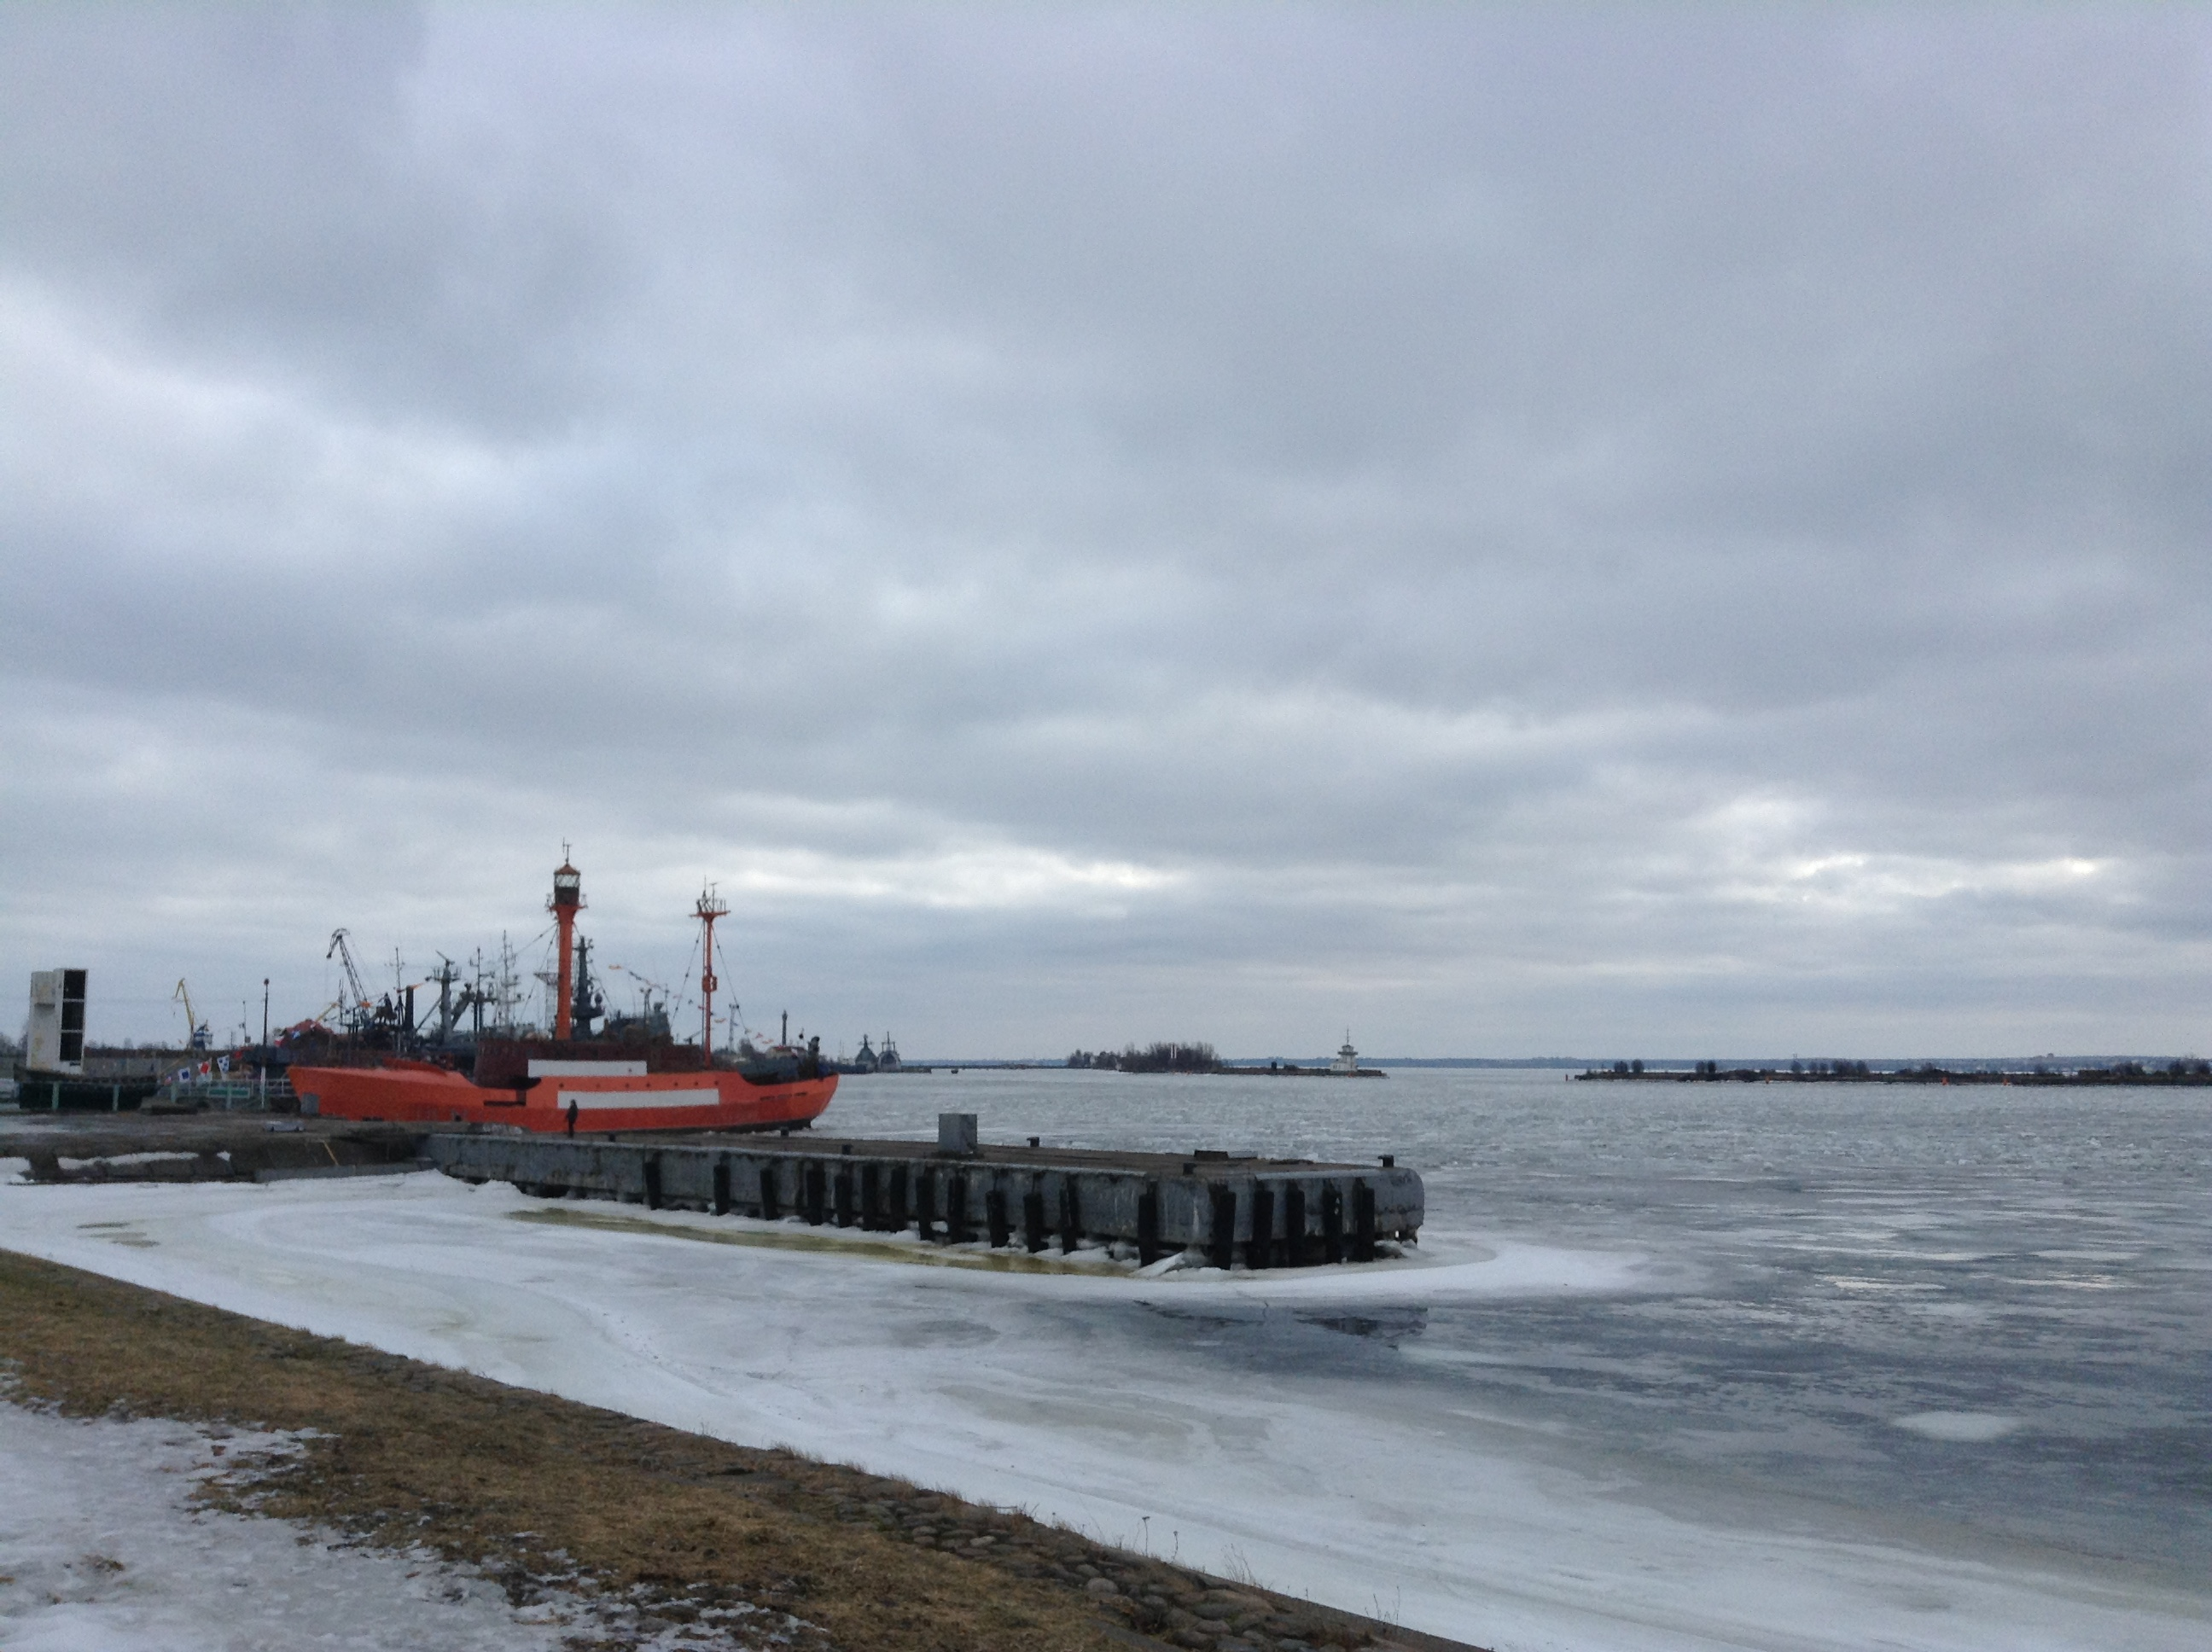 The icy shore of the Gulf of Finland. Source: Ajay Kamalakaran